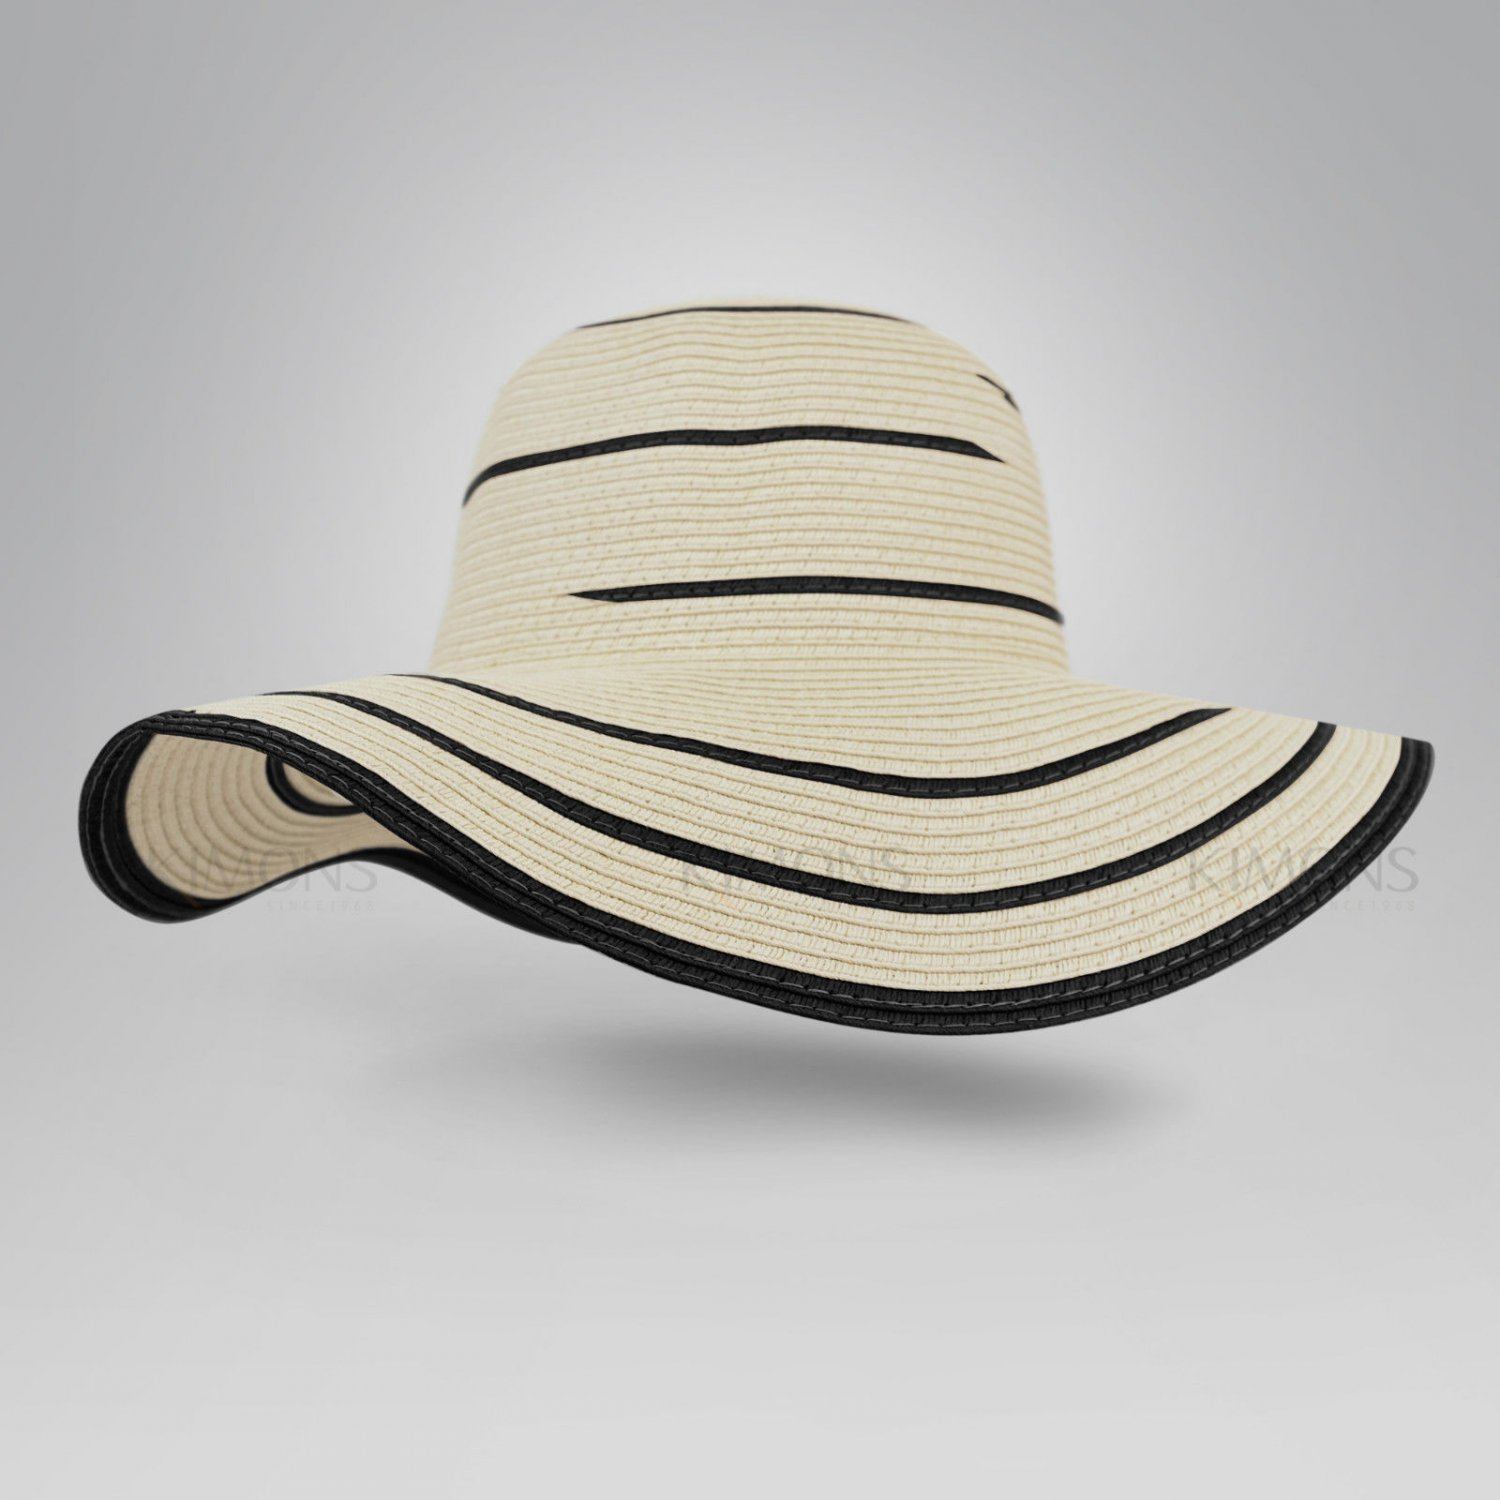 Beige Floppy Hat Brim with Ribbon Women Folding Summer Beach Sun Straw Beach Hat - Free Ship